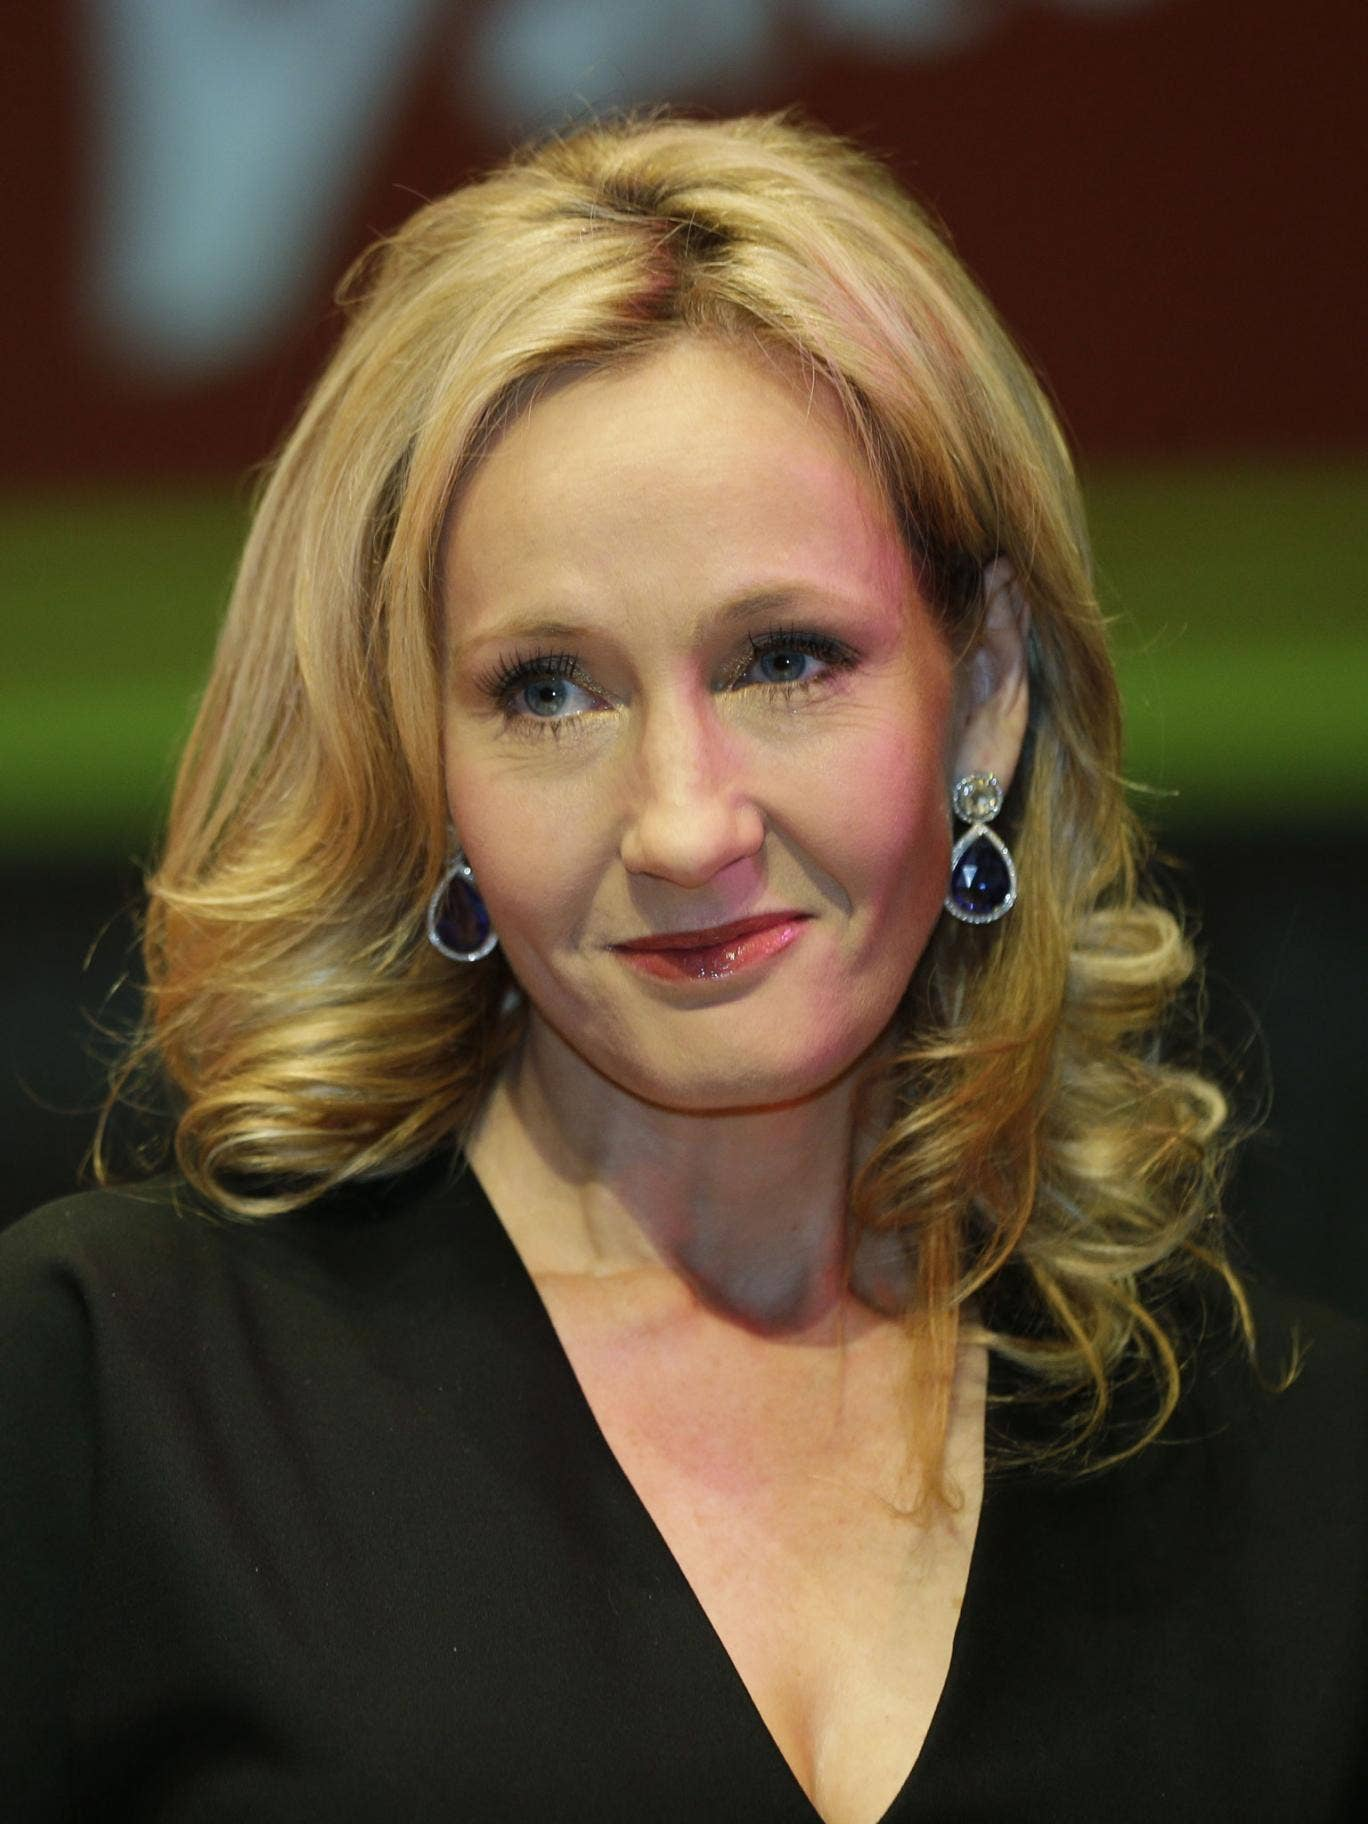 JK Rowling offered her latest work under a pseudonym to other publishers but was rejected